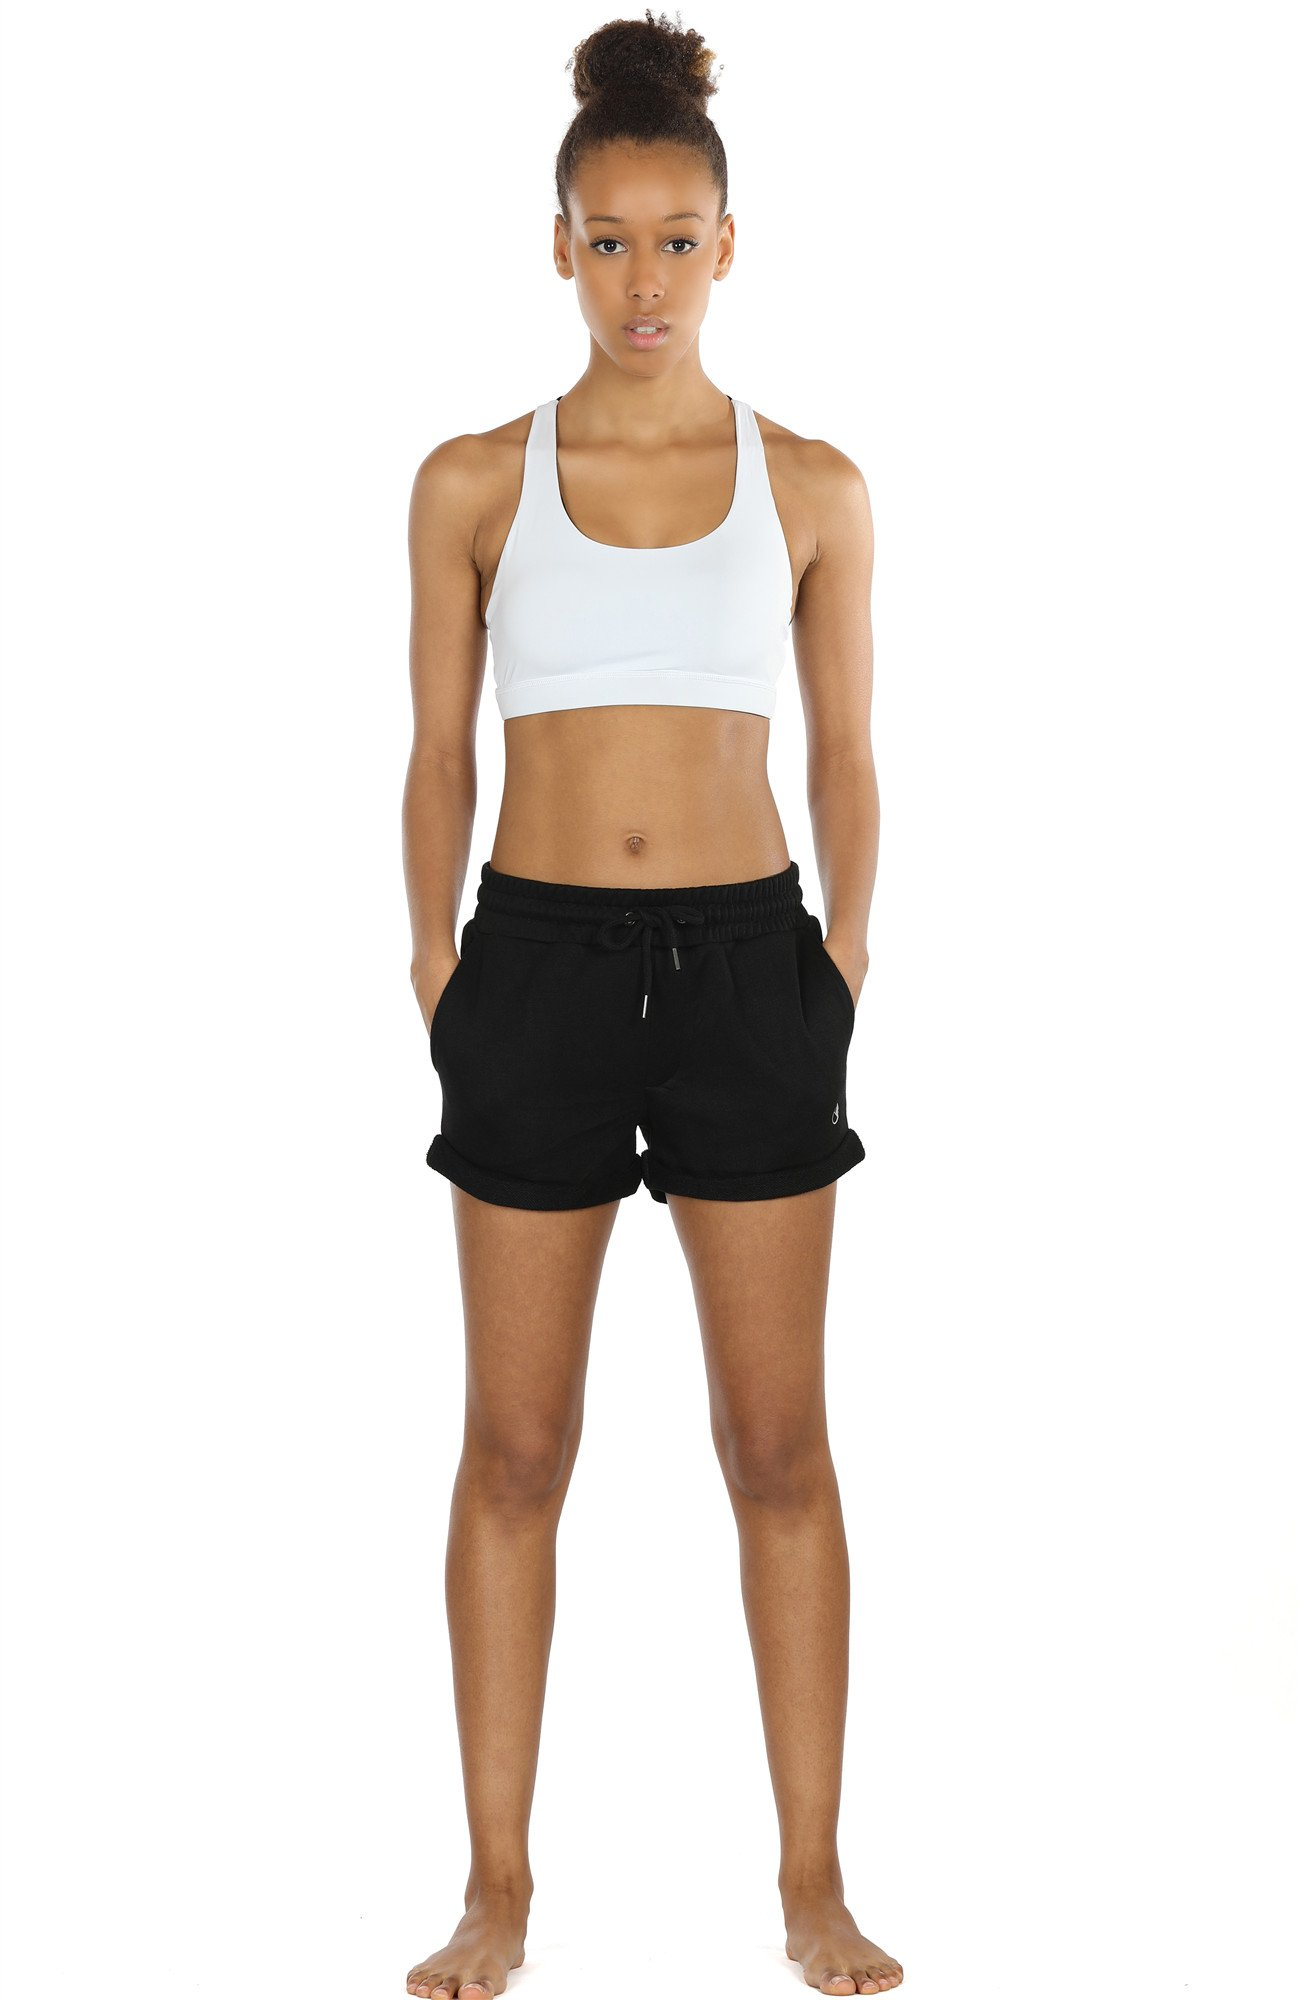 icyZone Activewear Athletic Shorts for Women Workout Running Lounge Cotton Sweat Shorts (Black, S)